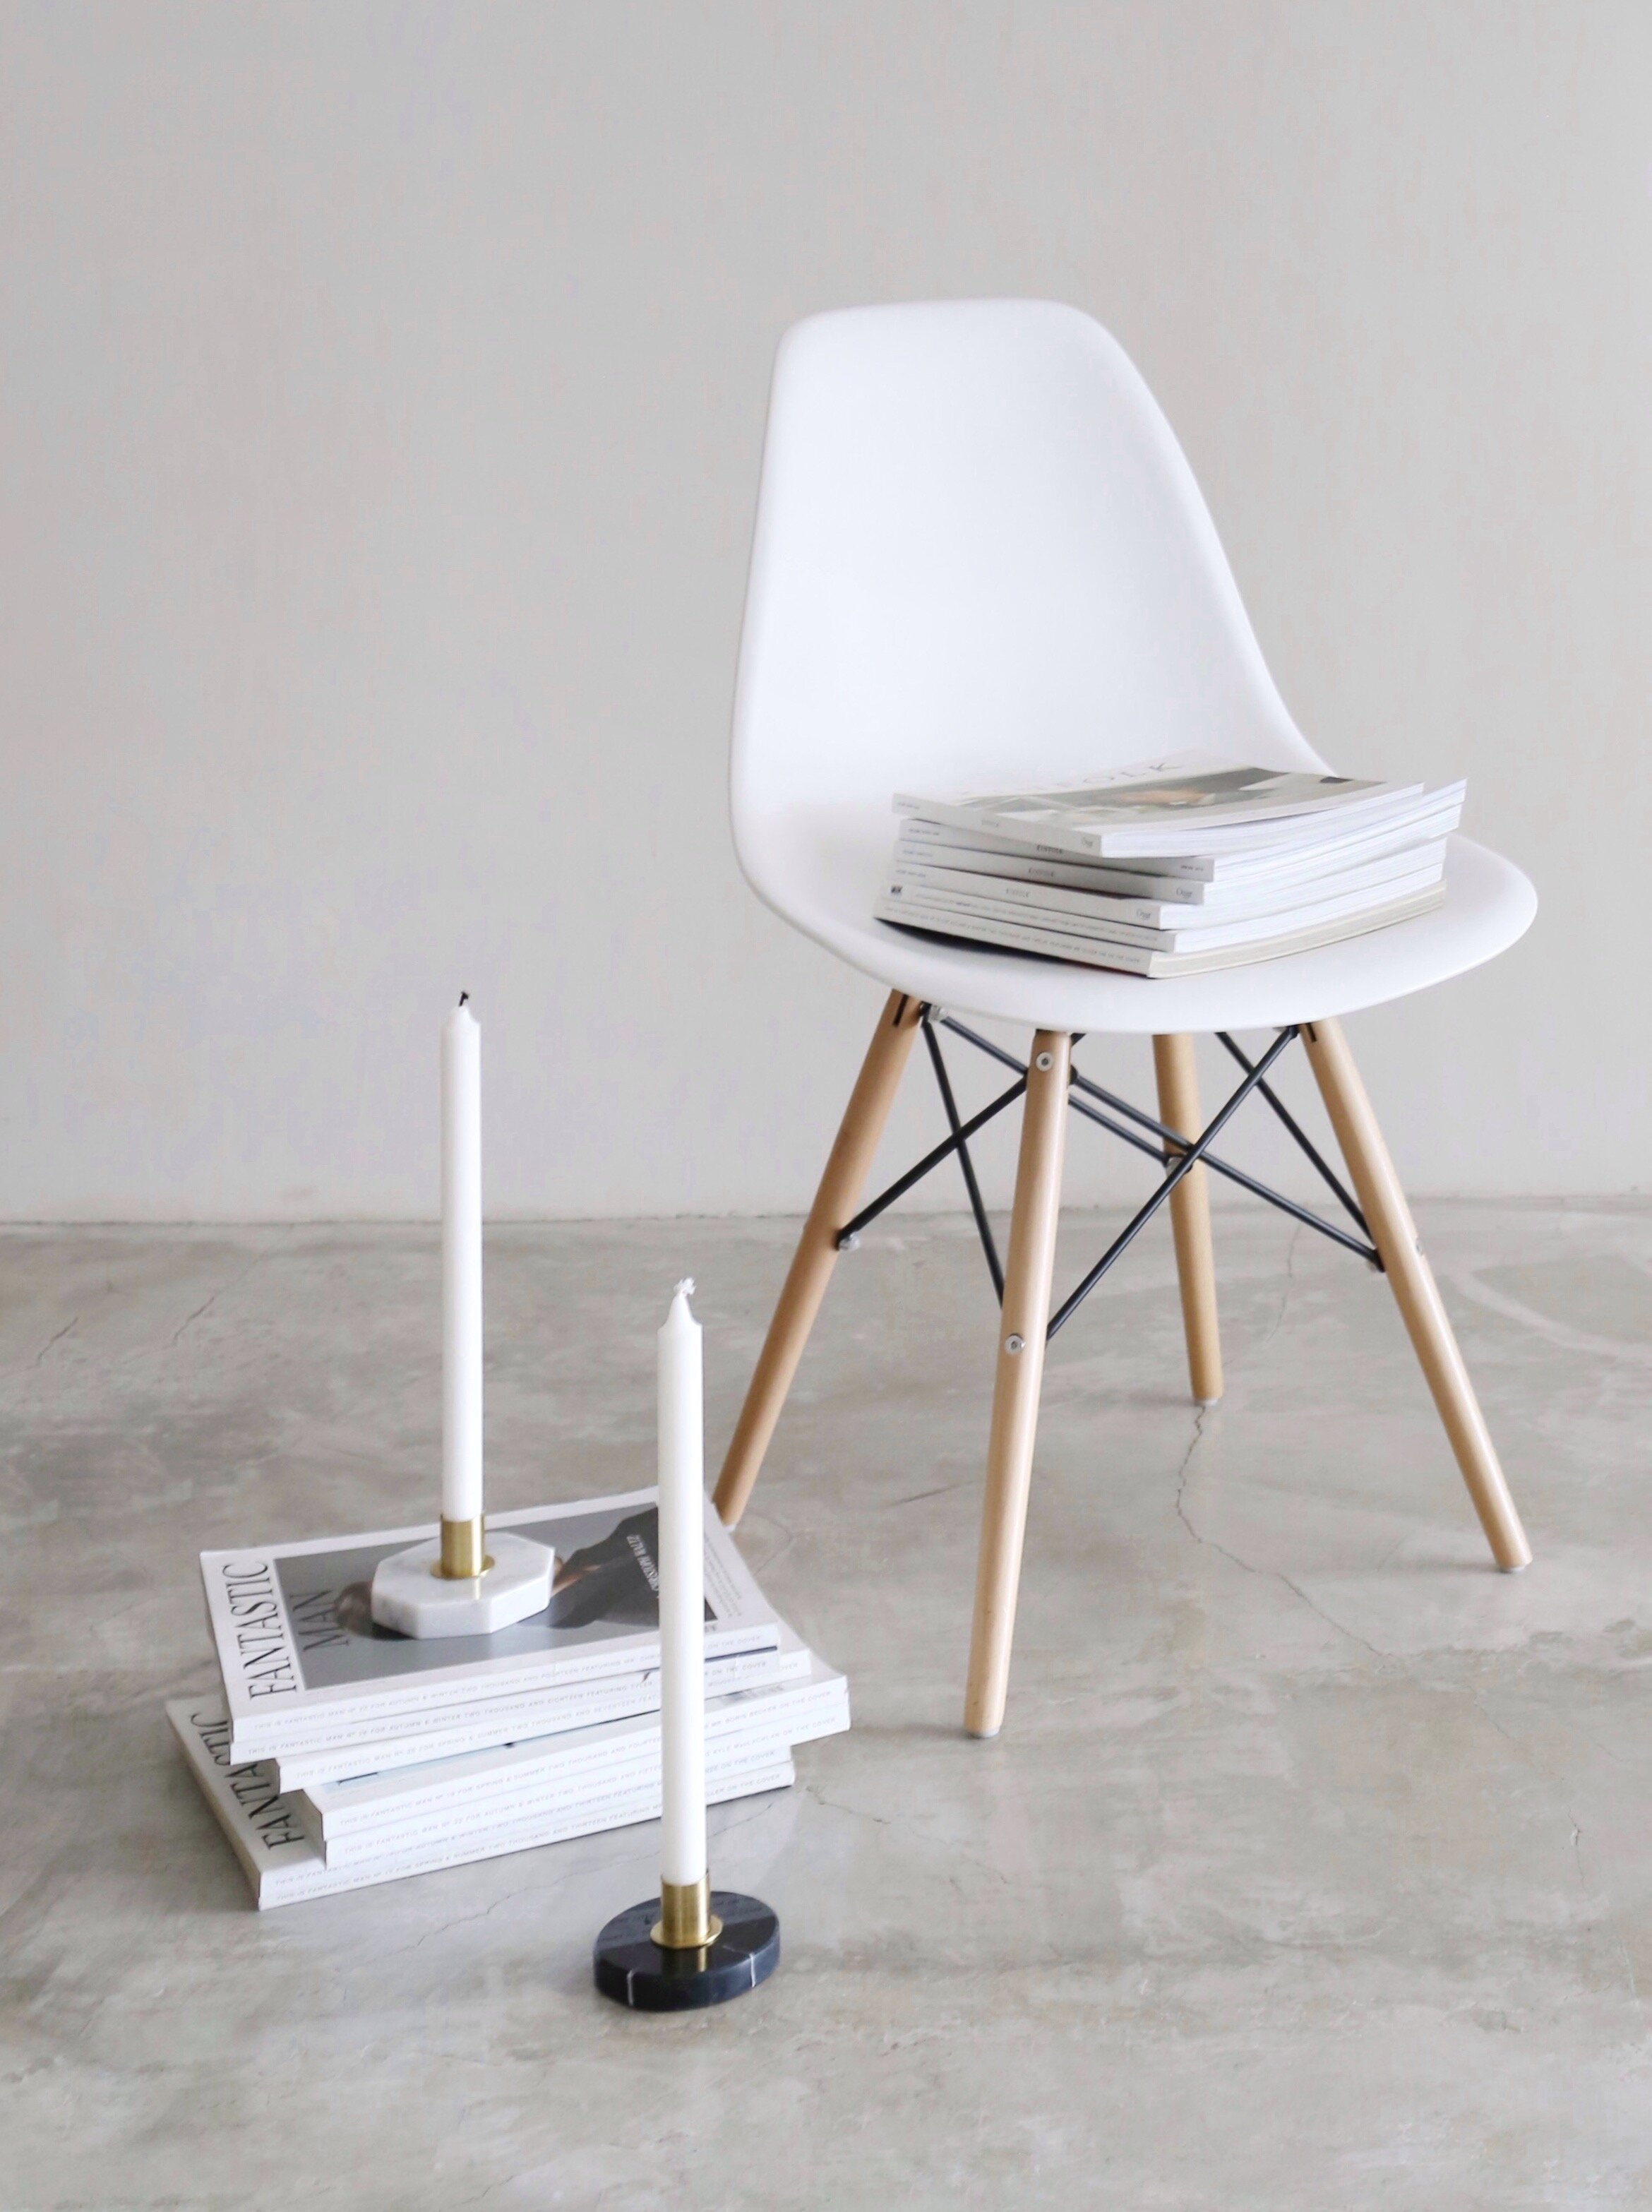 KILAU   Marble base with brass hardware candle holder  -   SIZE   10cm(D) x 5cm(H)  -   MARBLE OPTIONS   Carrara, Nero Marquina, Royal Green  -   PRICE   Rp. 350.000 + candle stick included